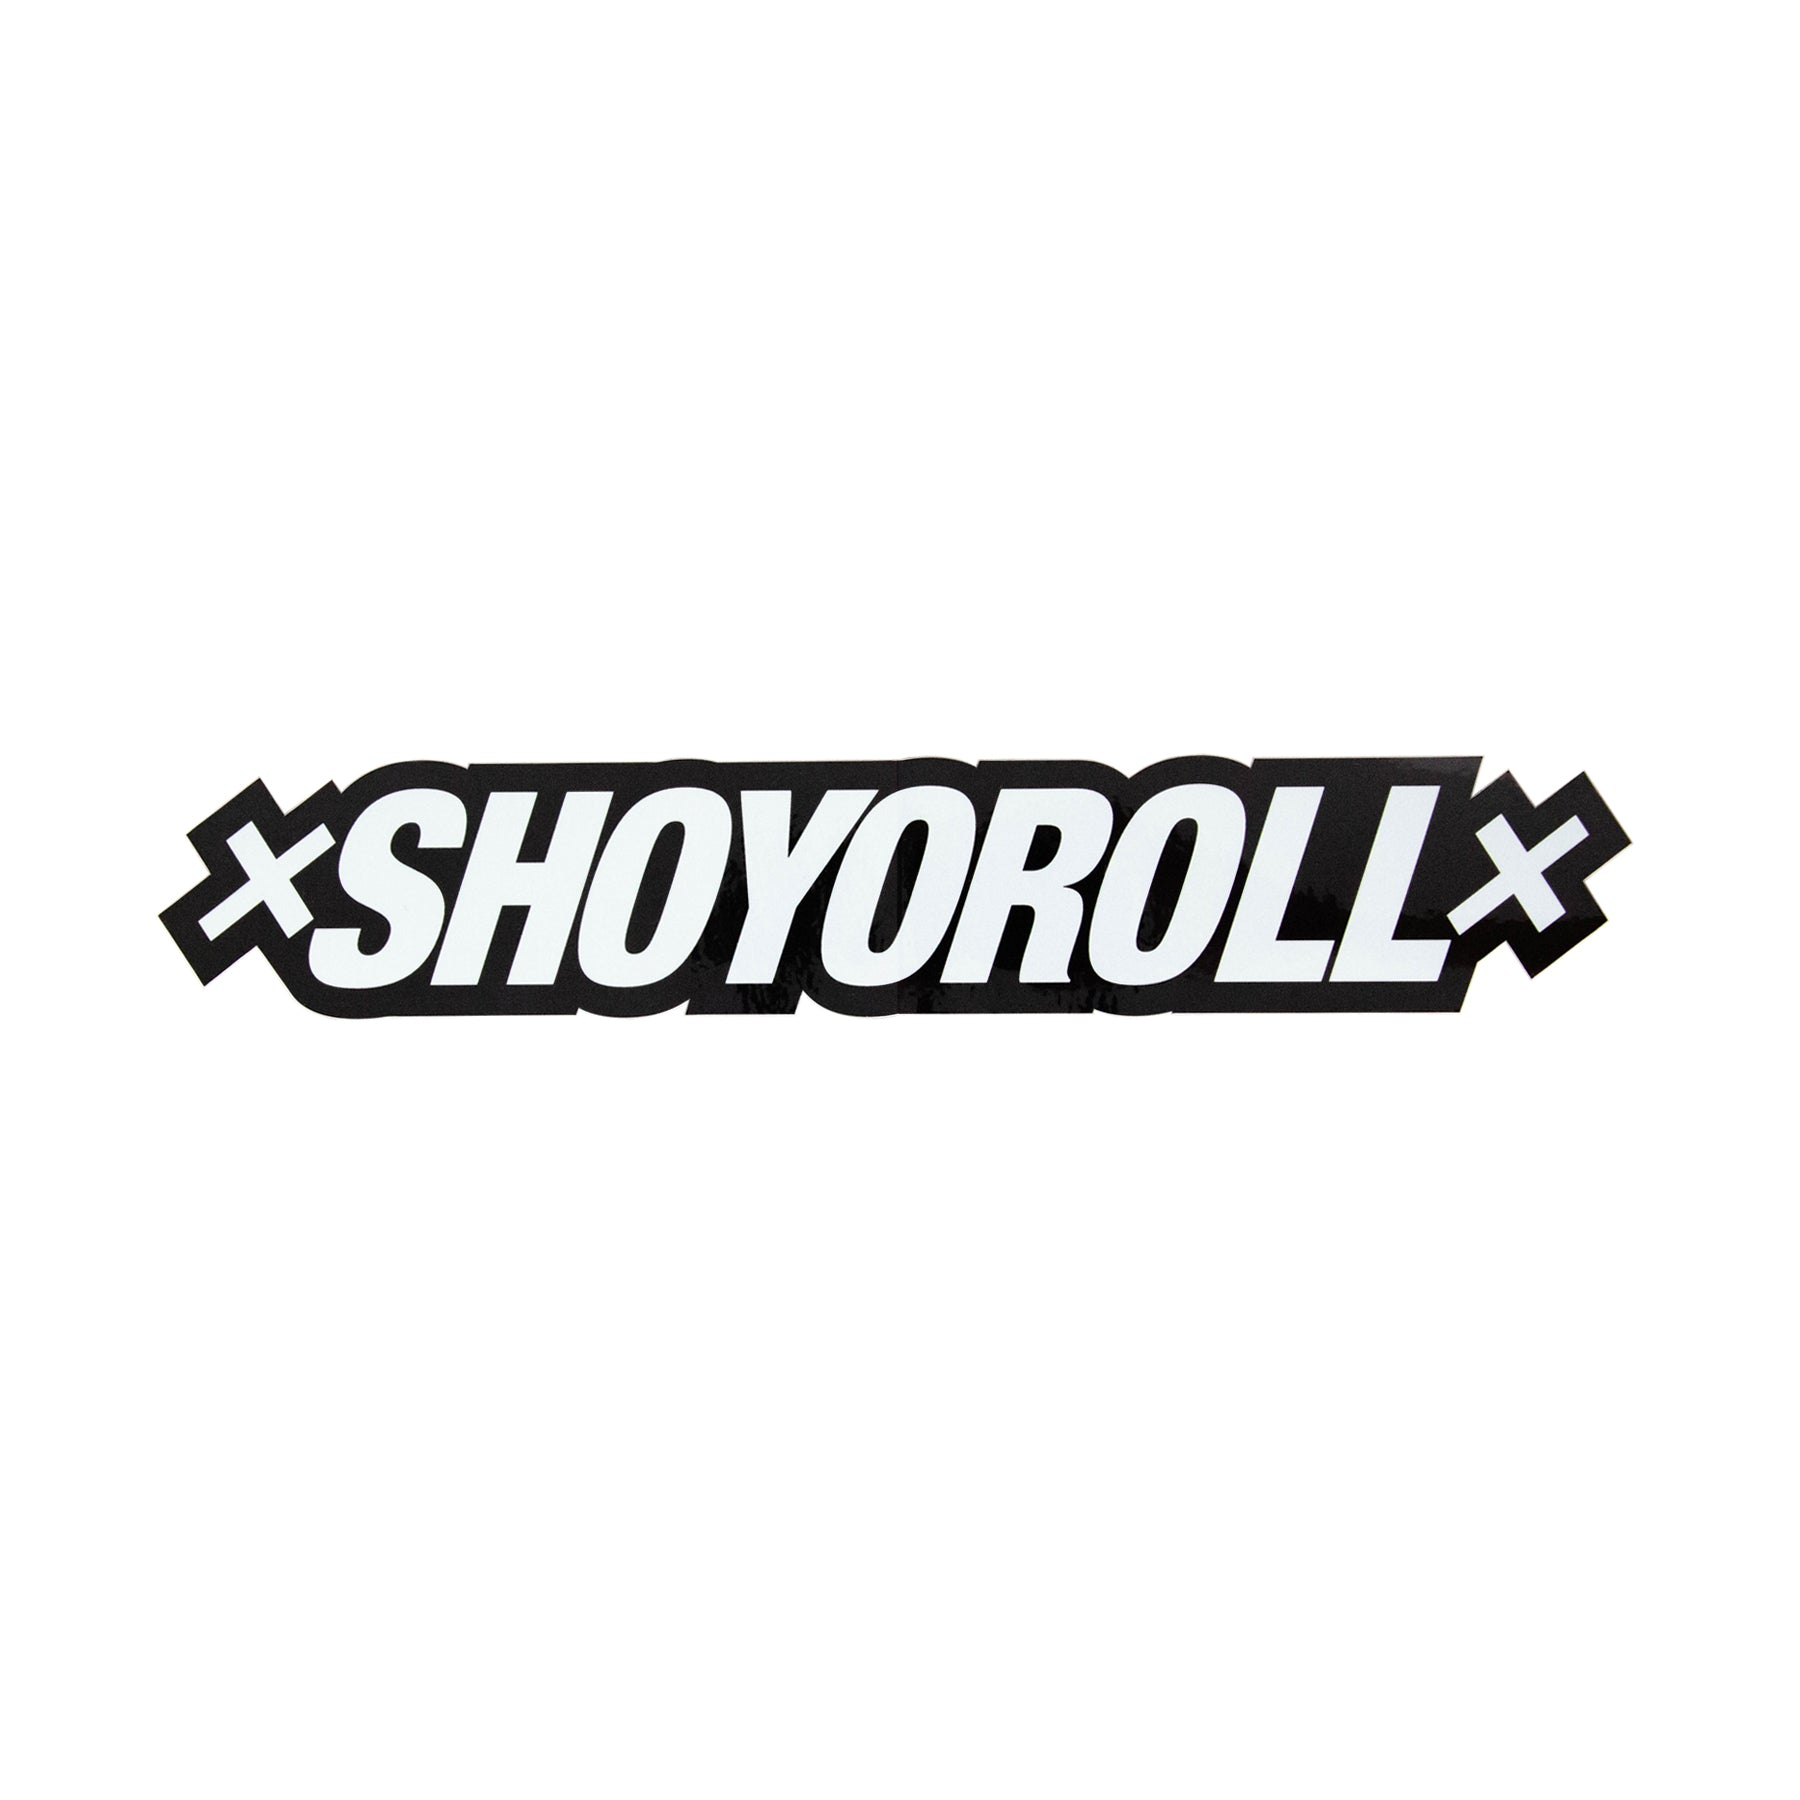 xSHOYOROLLx Decal (Cool Grey)